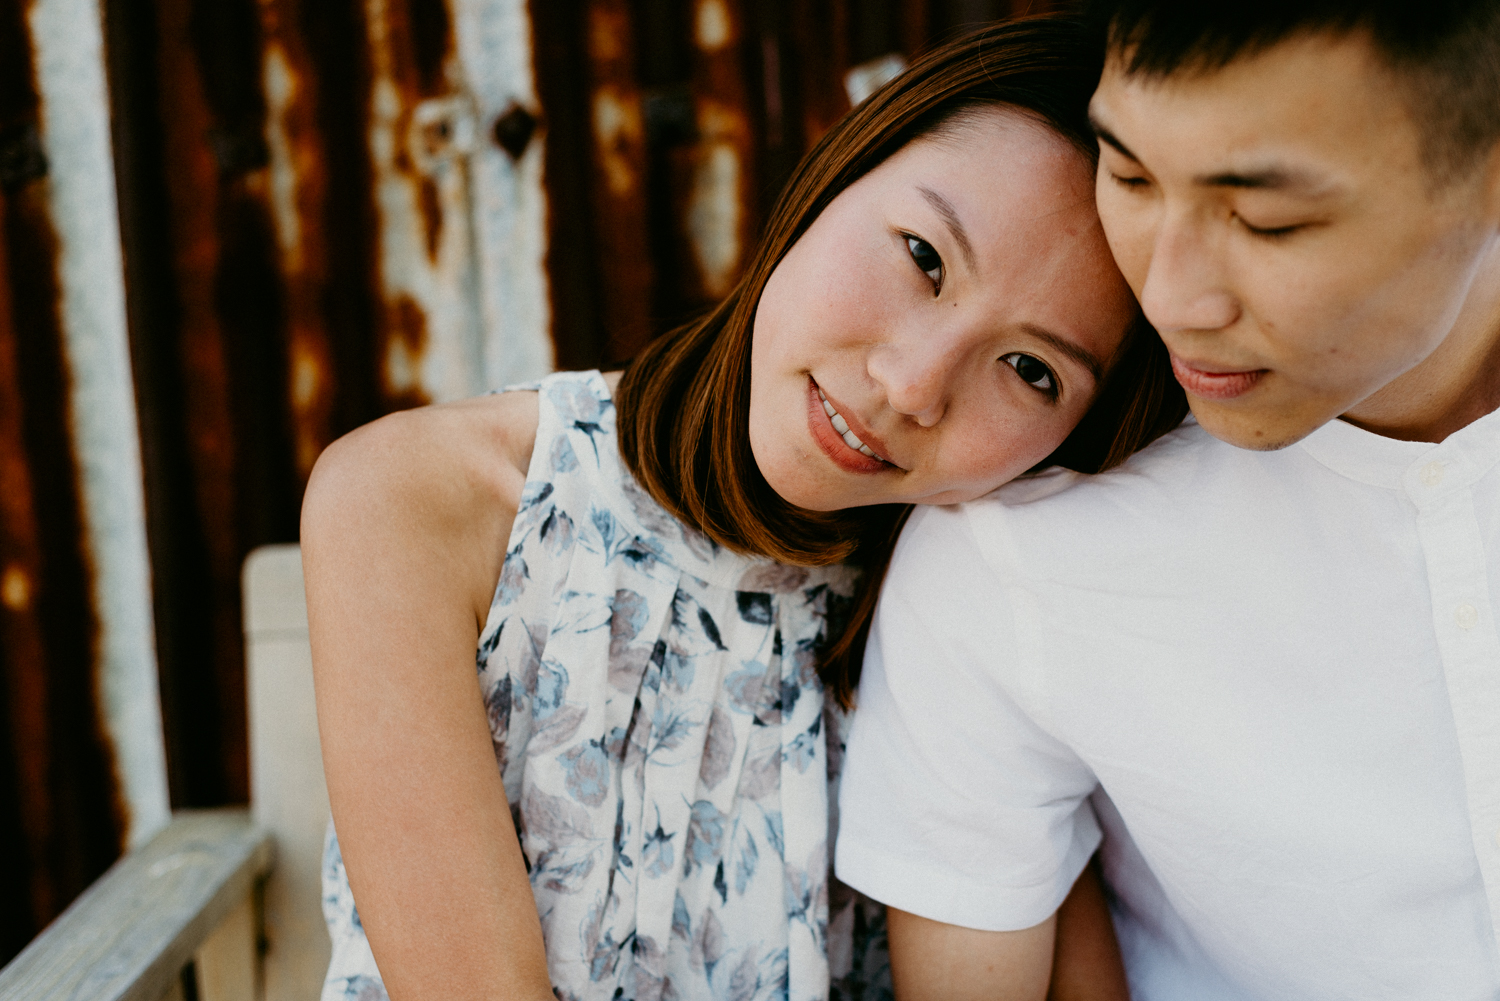 Hong_Kong_Kowloon_Destination_Engagement_Shoot-223.JPG